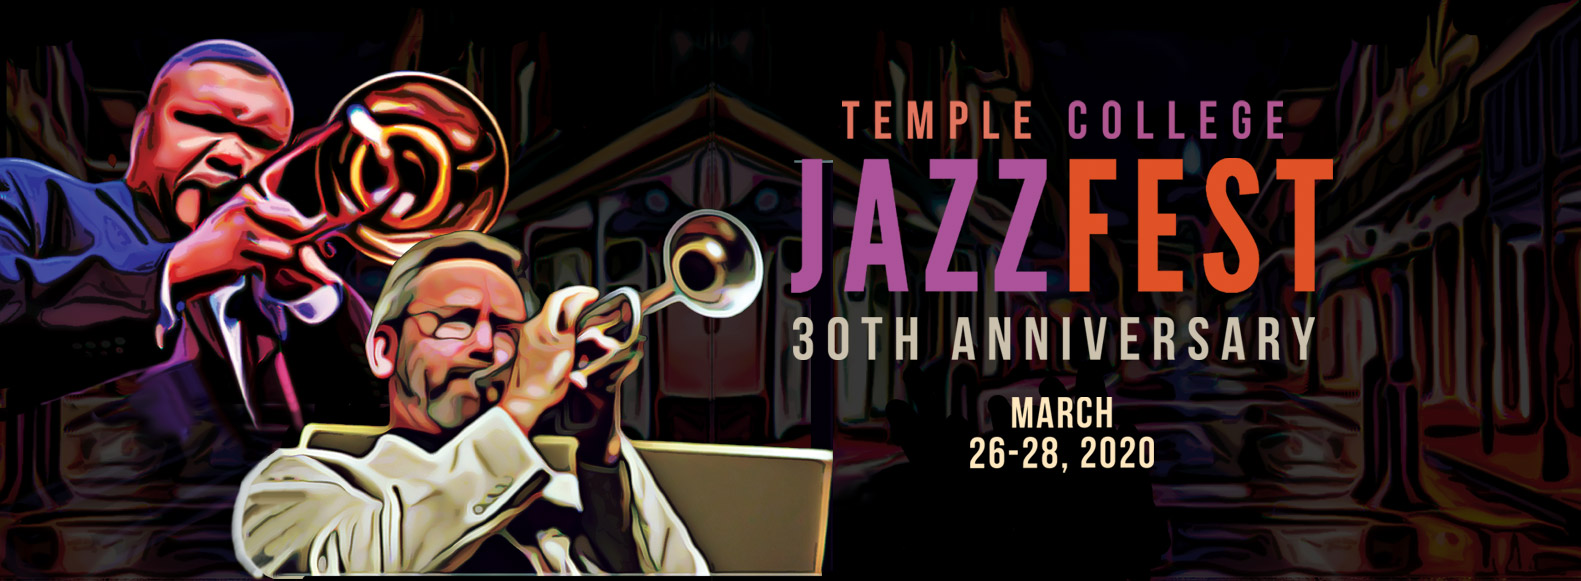 Temple College Jazzfest